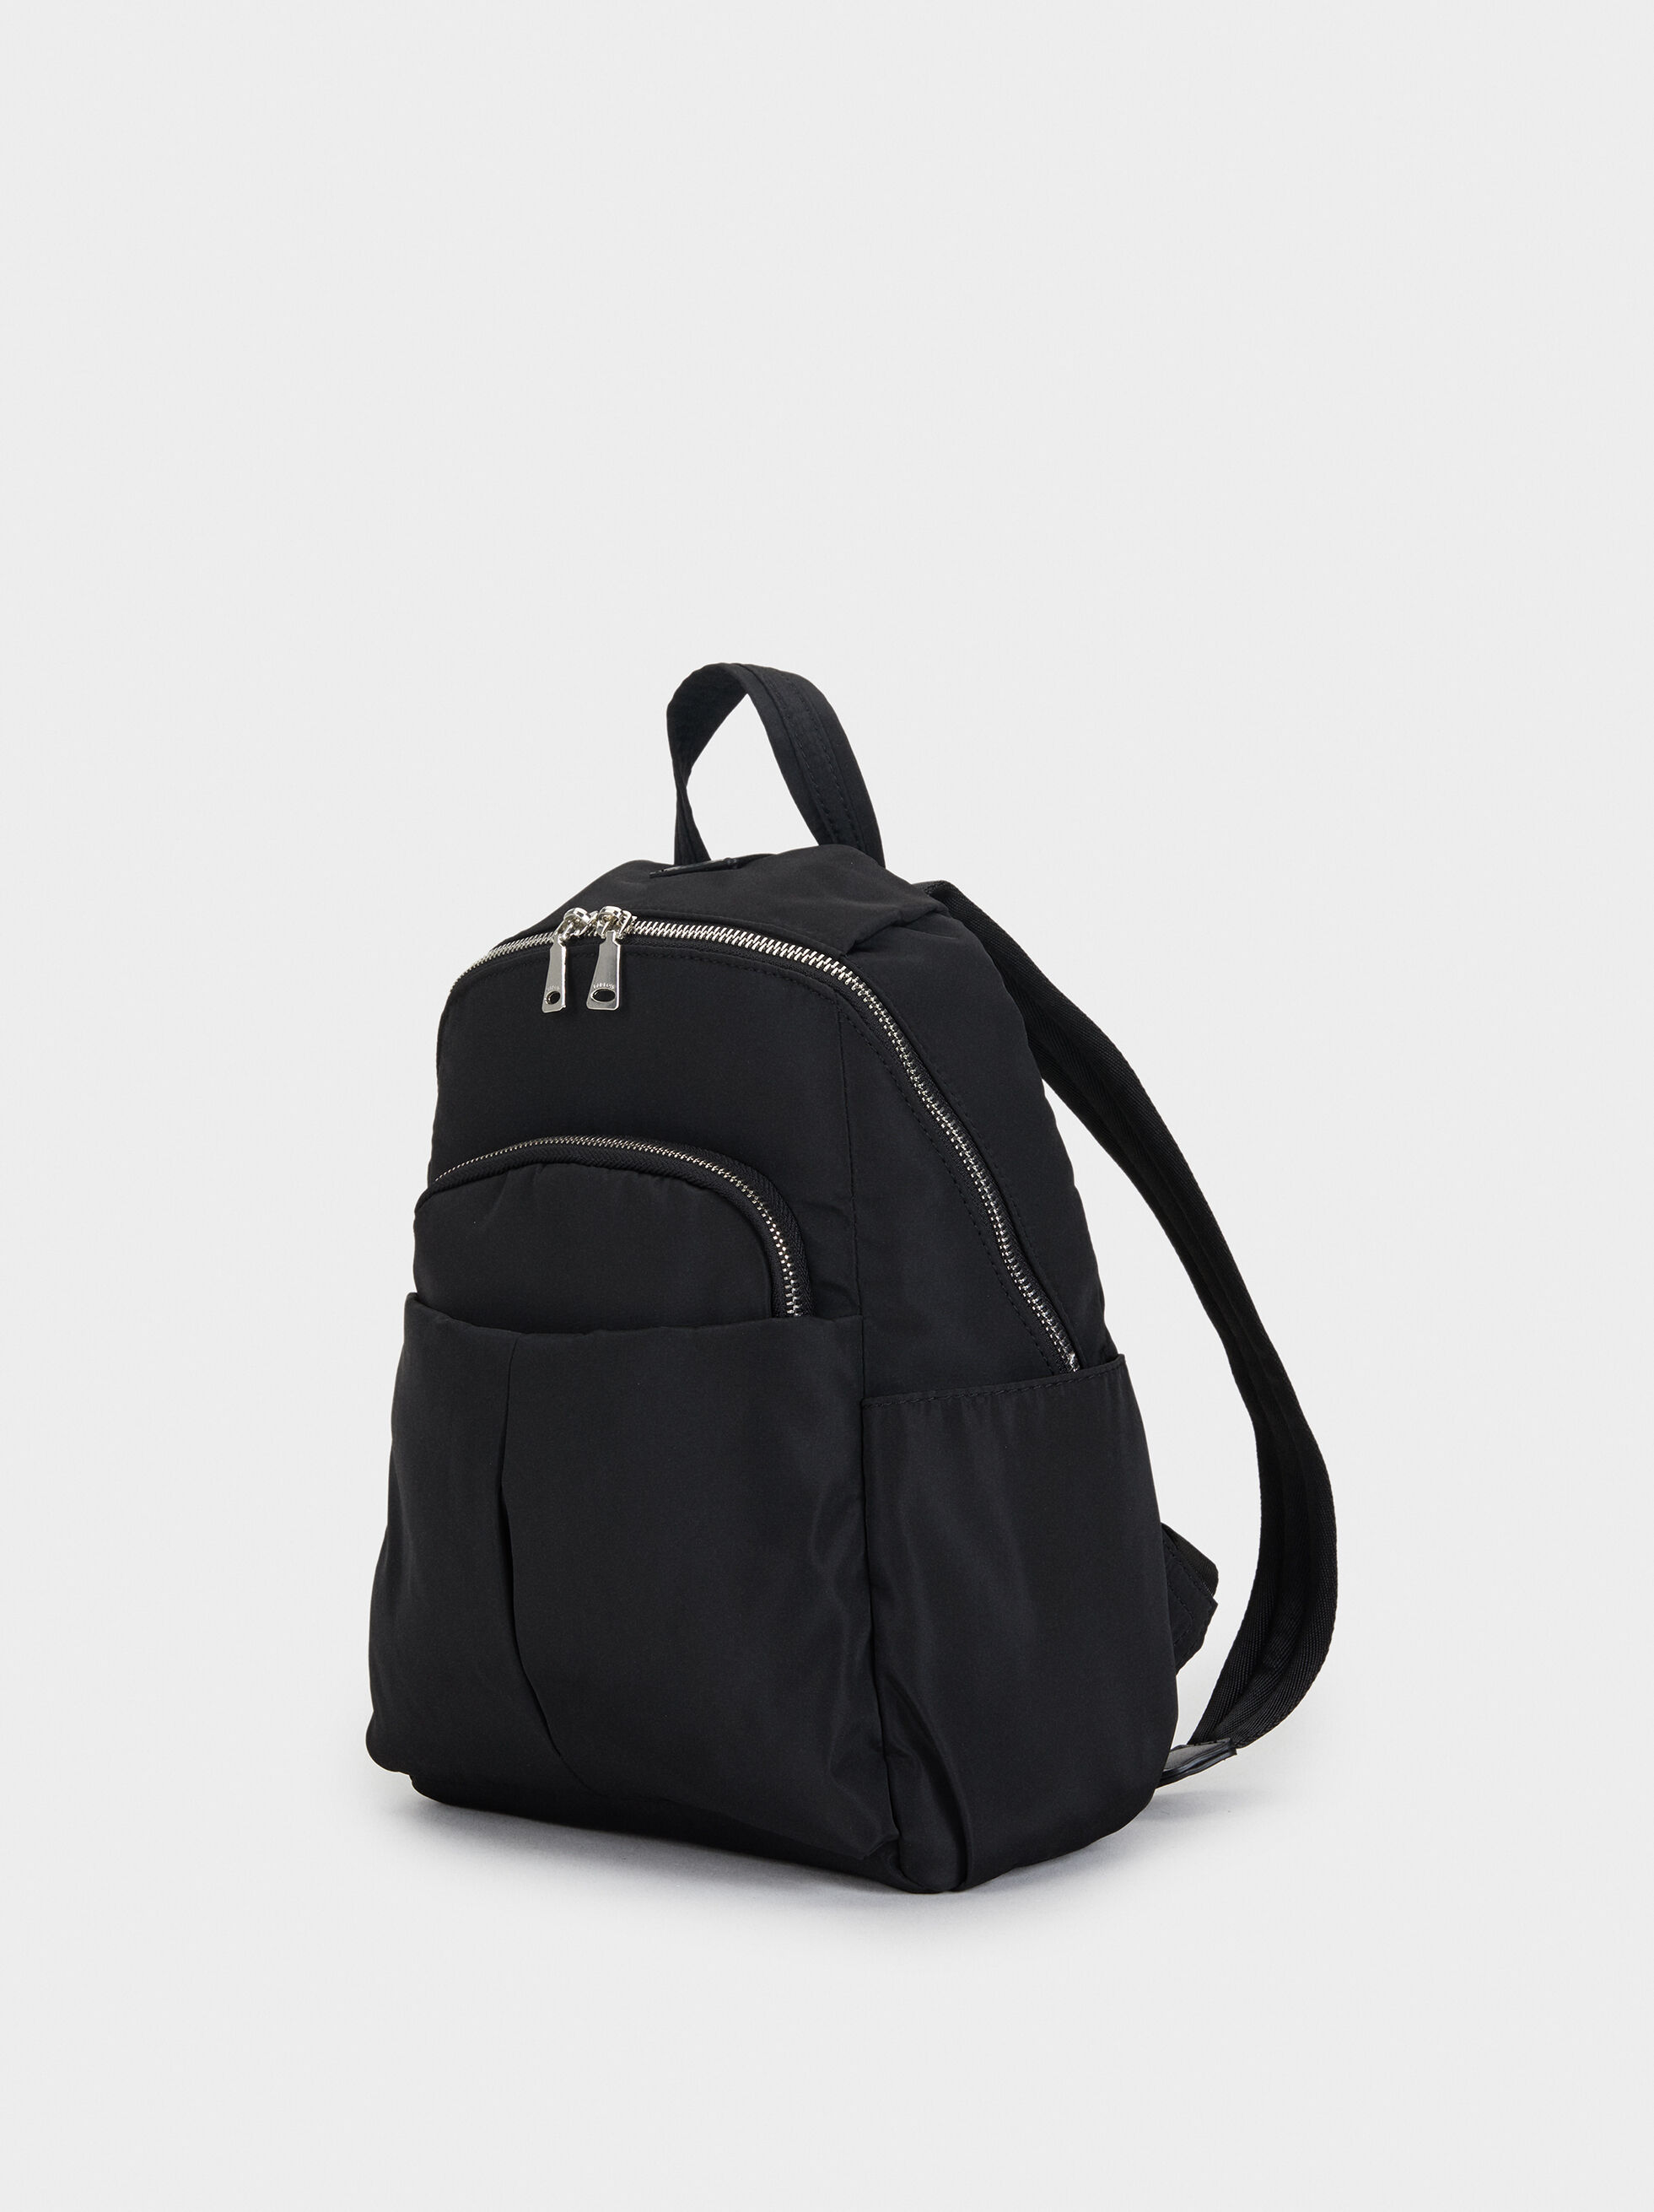 Nylon Backpack With Outer Pockets, Black, hi-res